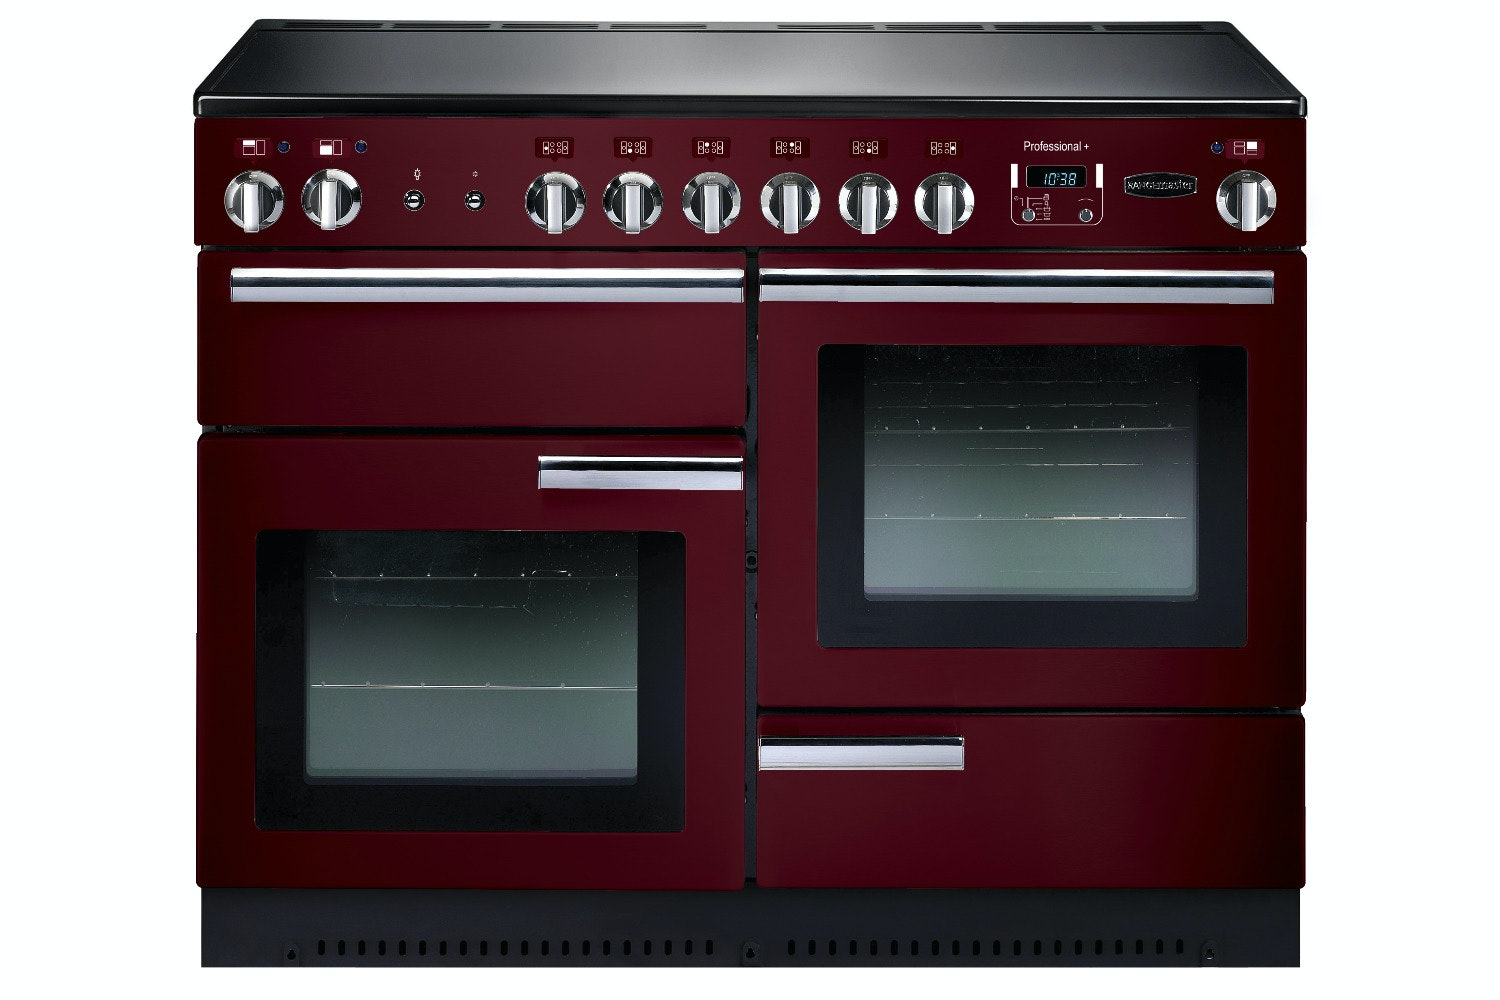 Rangemaster Pro Plus 110cm Electric Range Cooker | PROP110ECCY/C | Cranberry